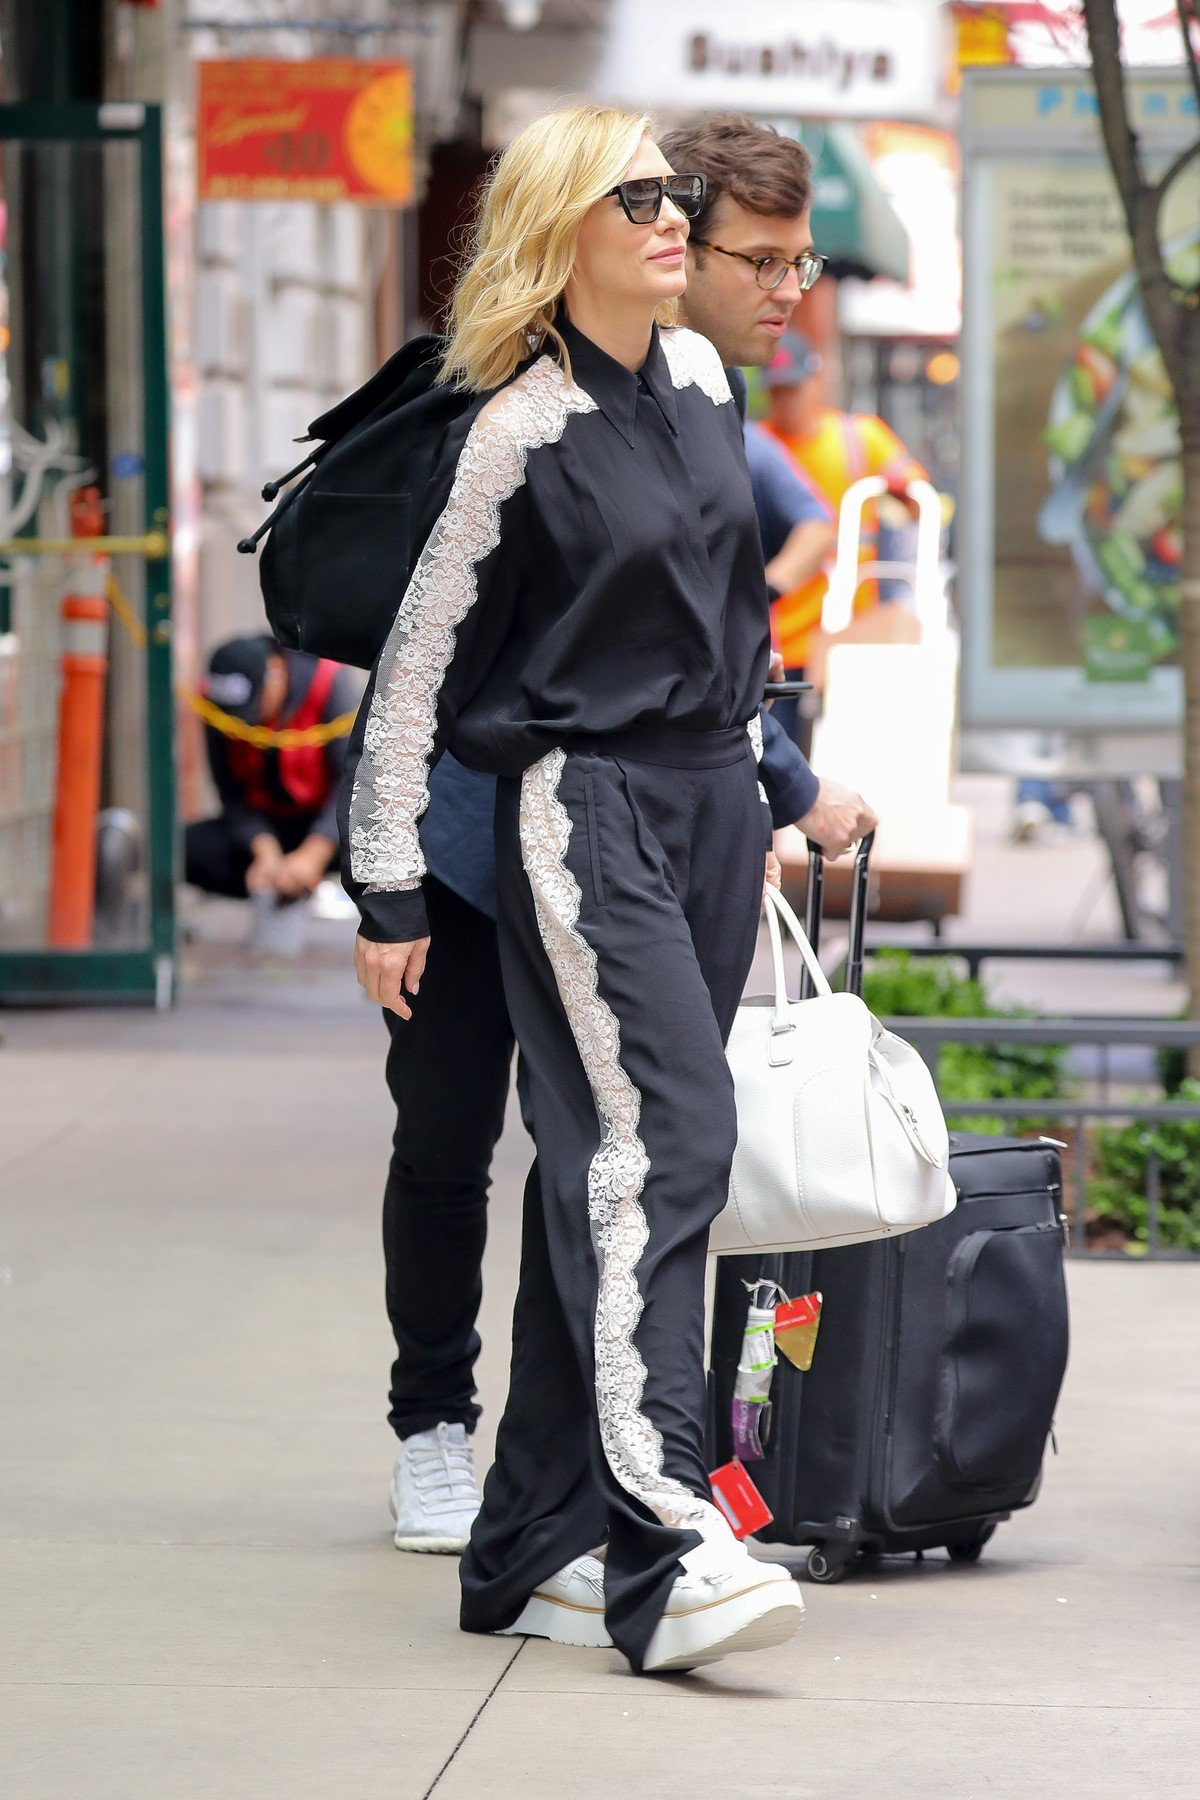 Cate Blanchett was spotted leaving her hotel in New York City. 06 Jun 2018, Image: 374080273, License: Rights-managed, Restrictions: World Rights, Model Release: no, Credit line: Profimedia, Mega Agency